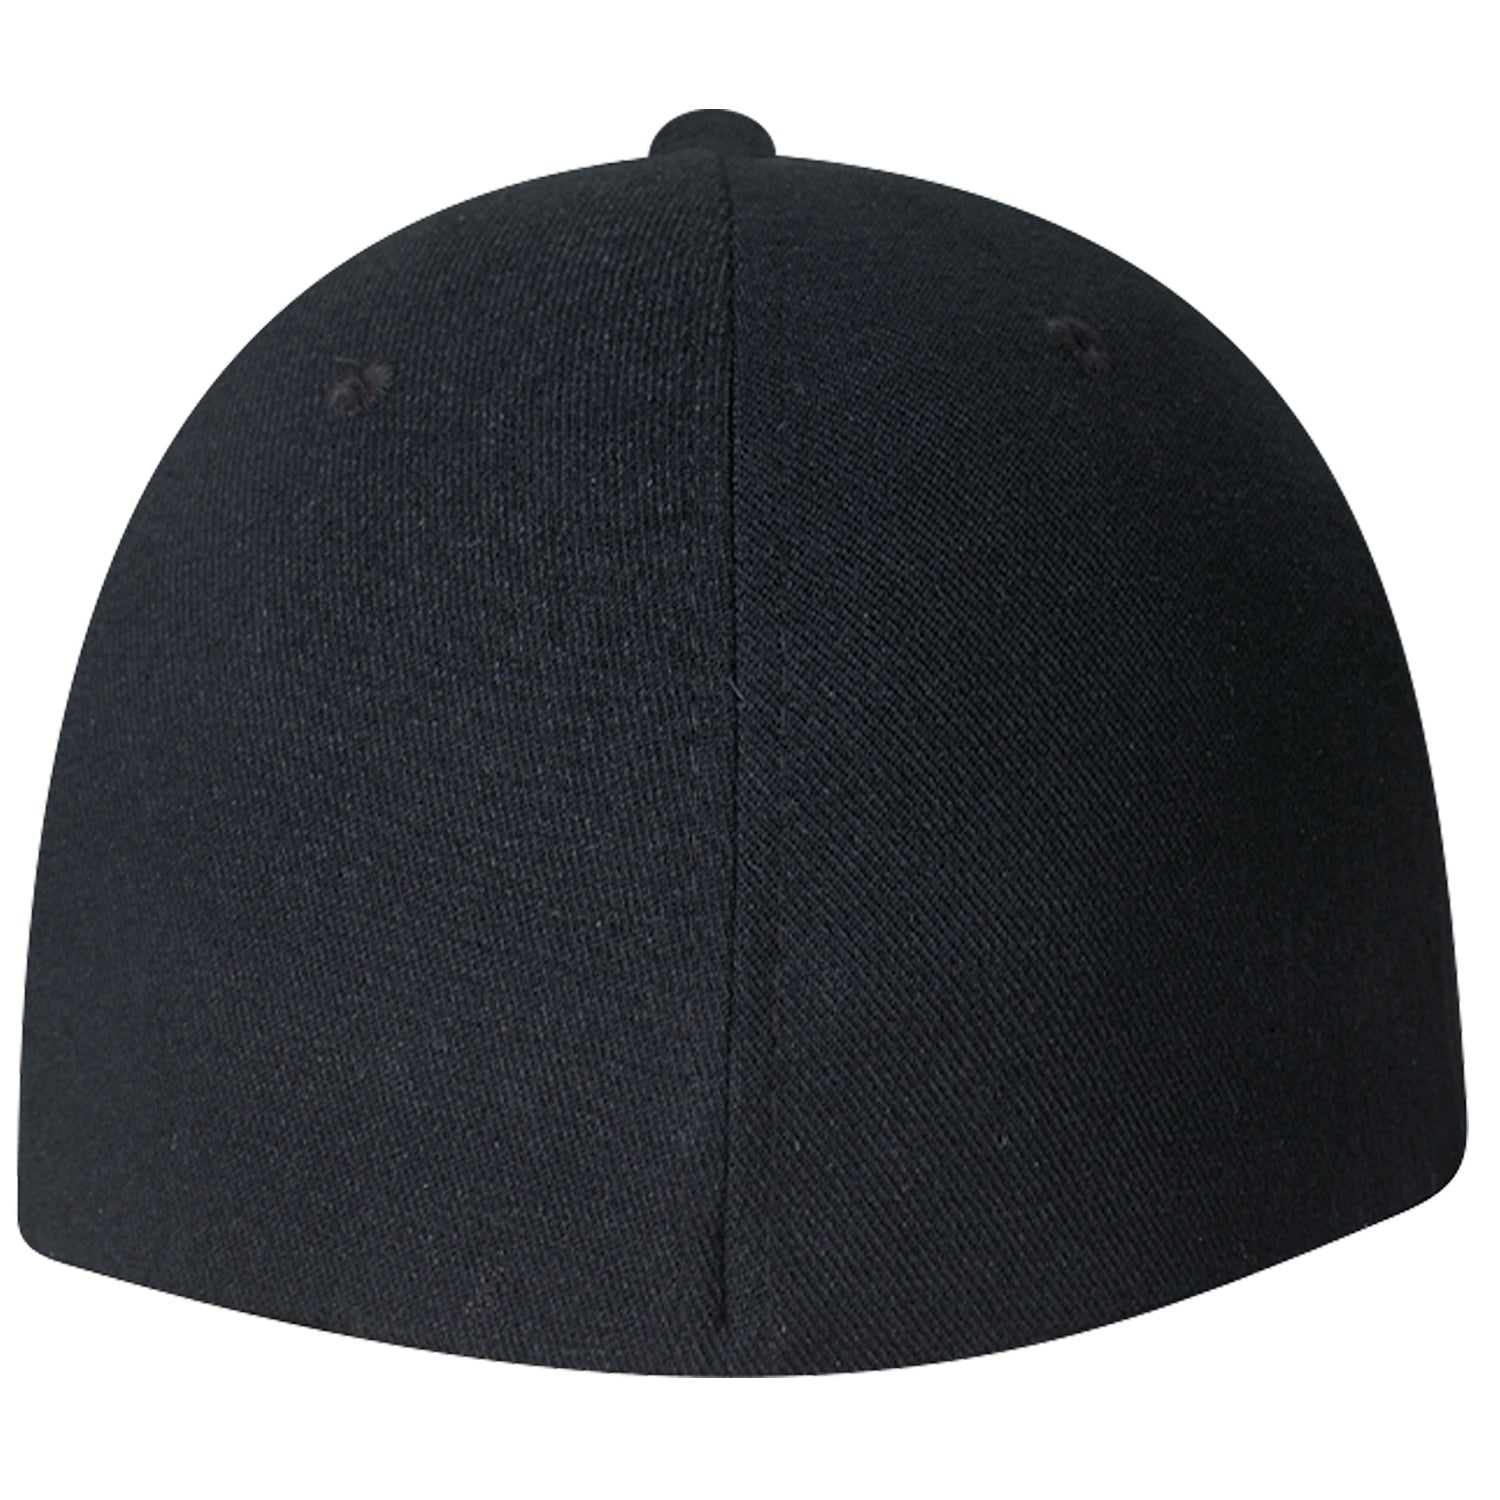 AJM WOOL BLEND AND SPANDEX HAT